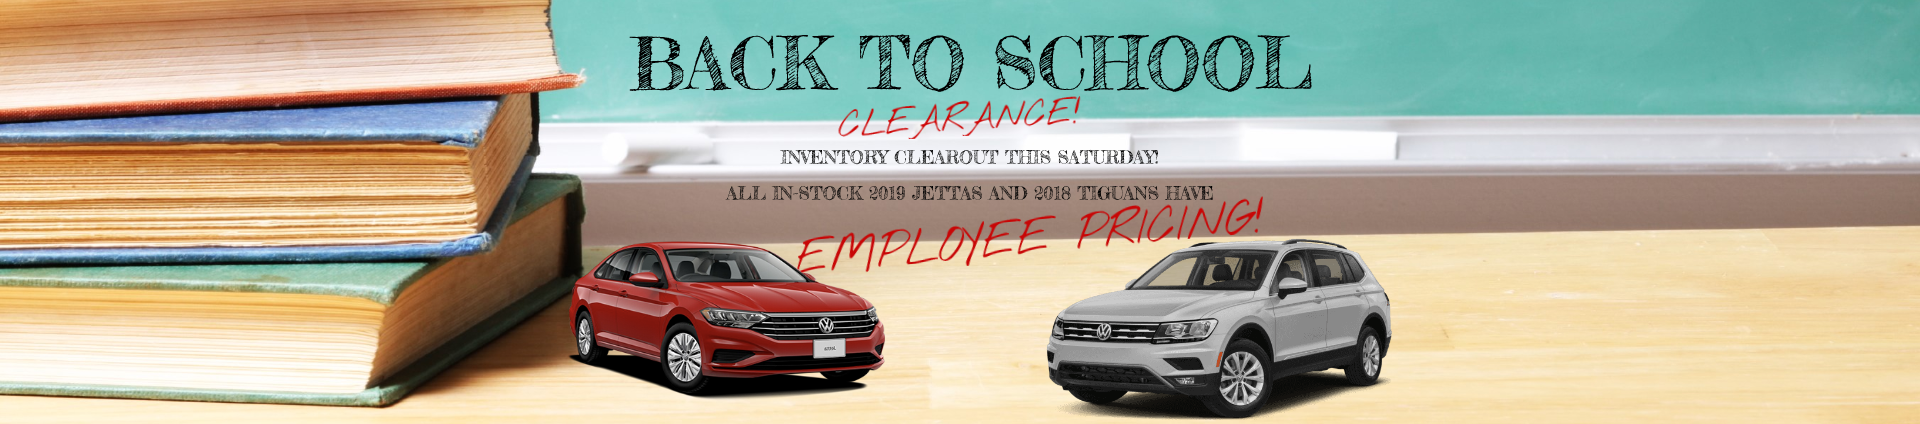 Back to School Clearance Event